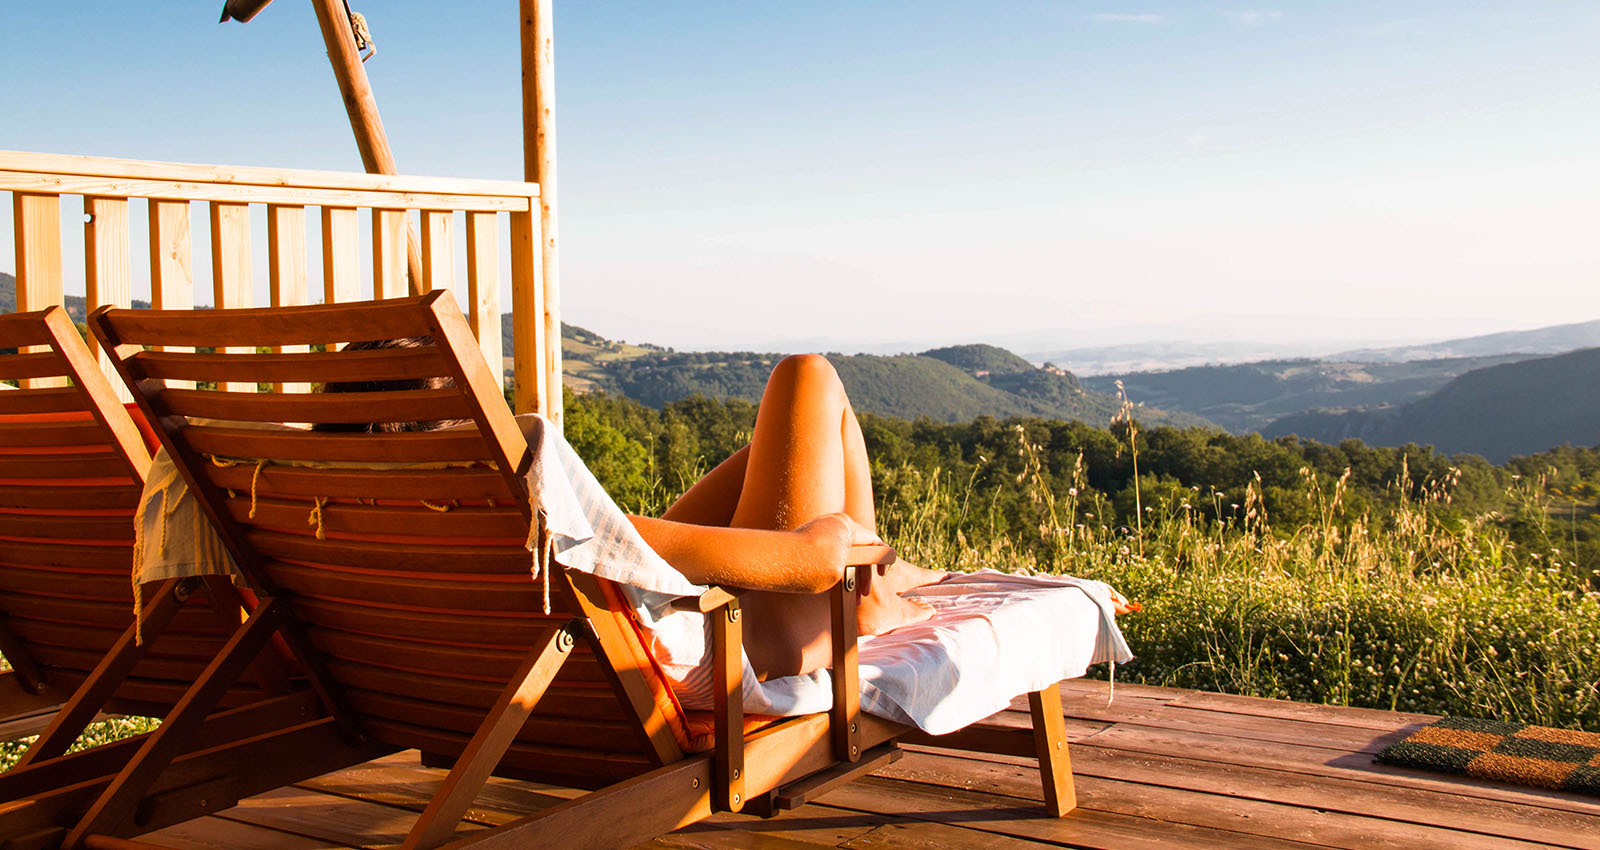 5 Tips for Planning Last Minute Naturist Vacations